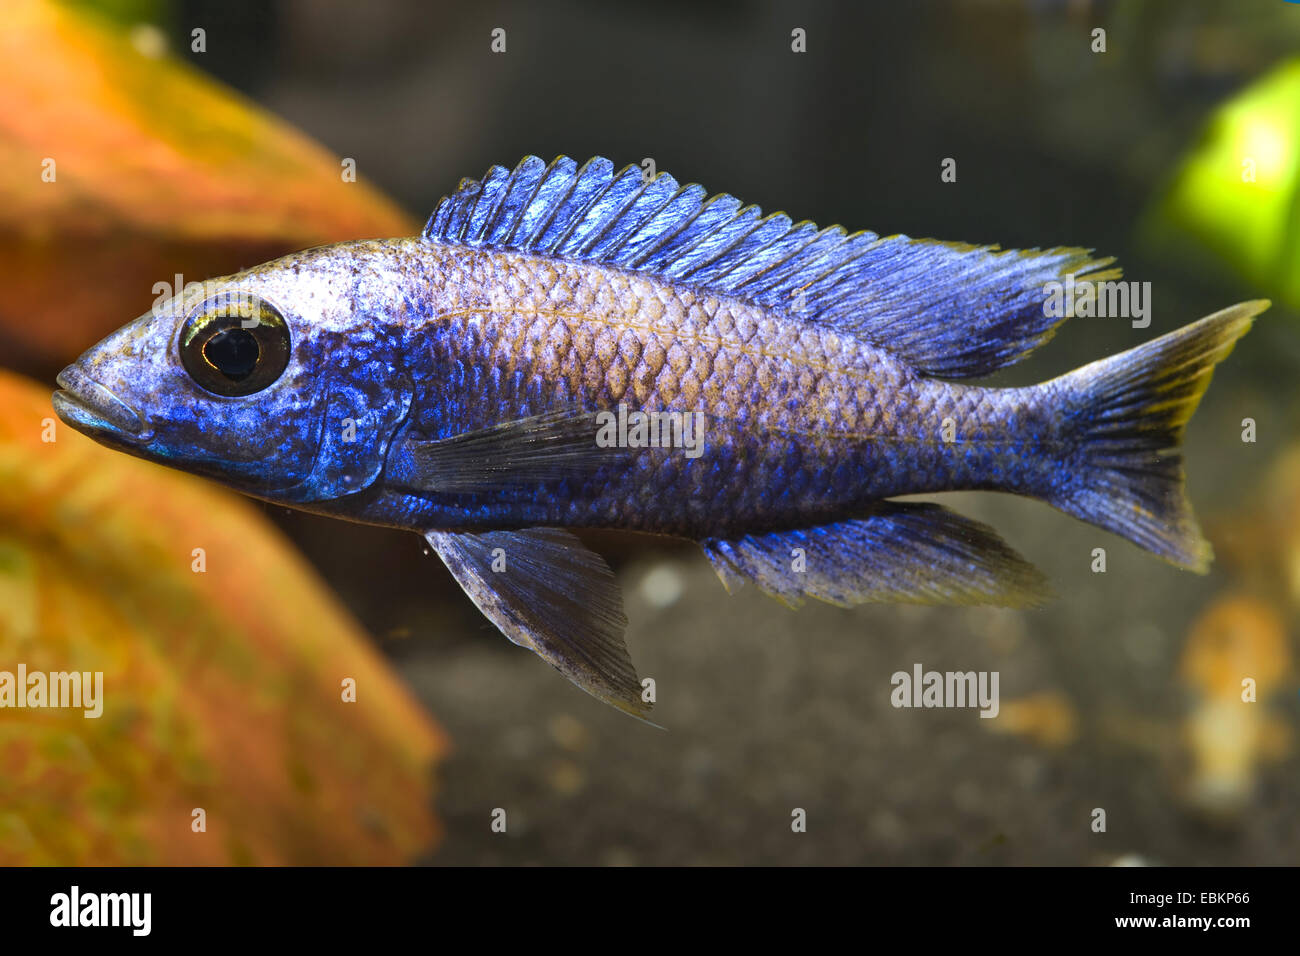 cichlid (Otopharynx lithobates), breed snowfield - Stock Image